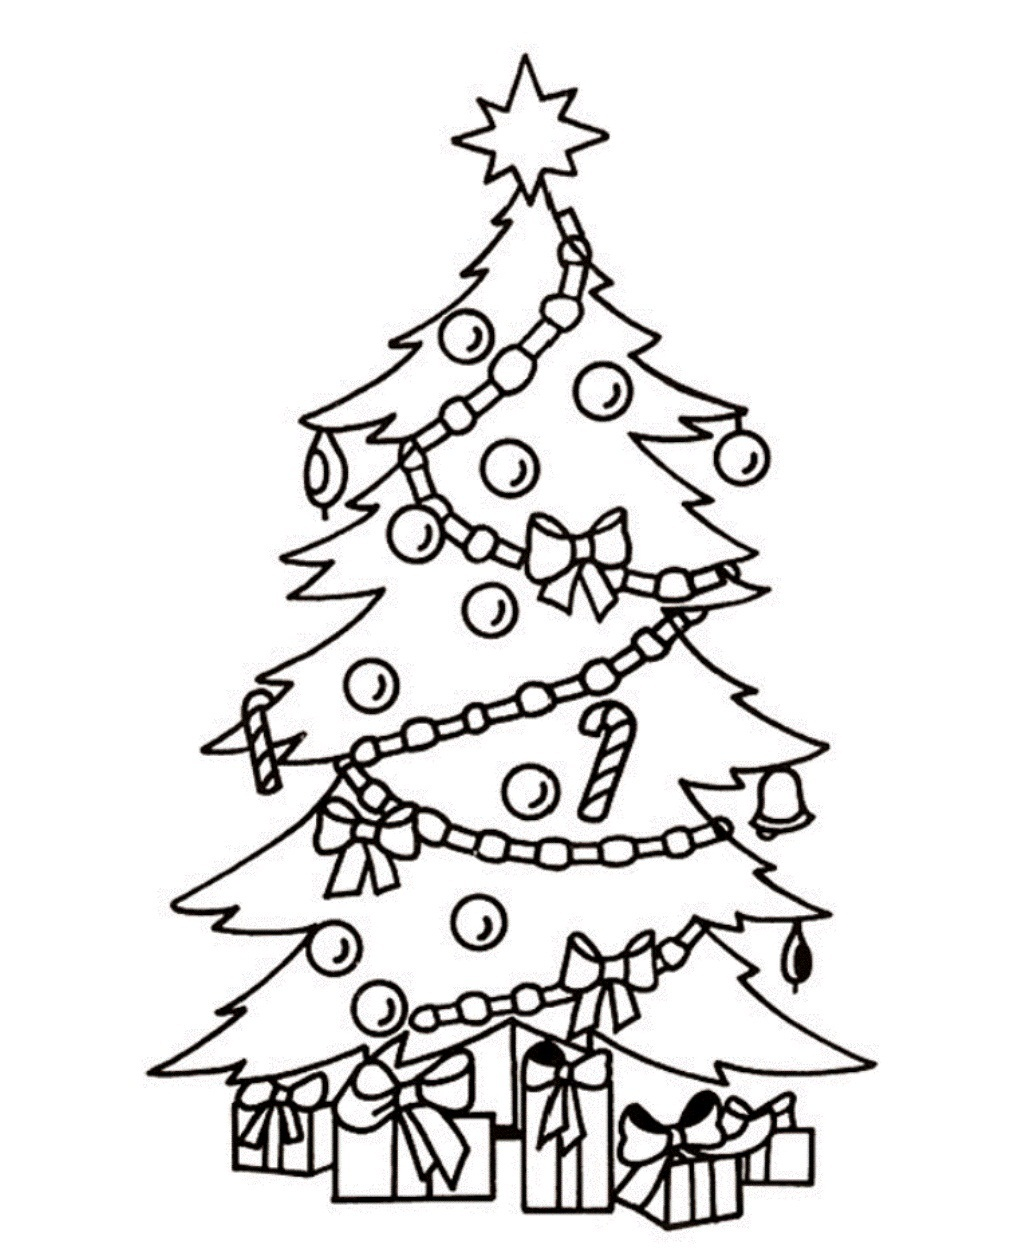 Christmas tree  black and white christmas tree clip art tree clipart